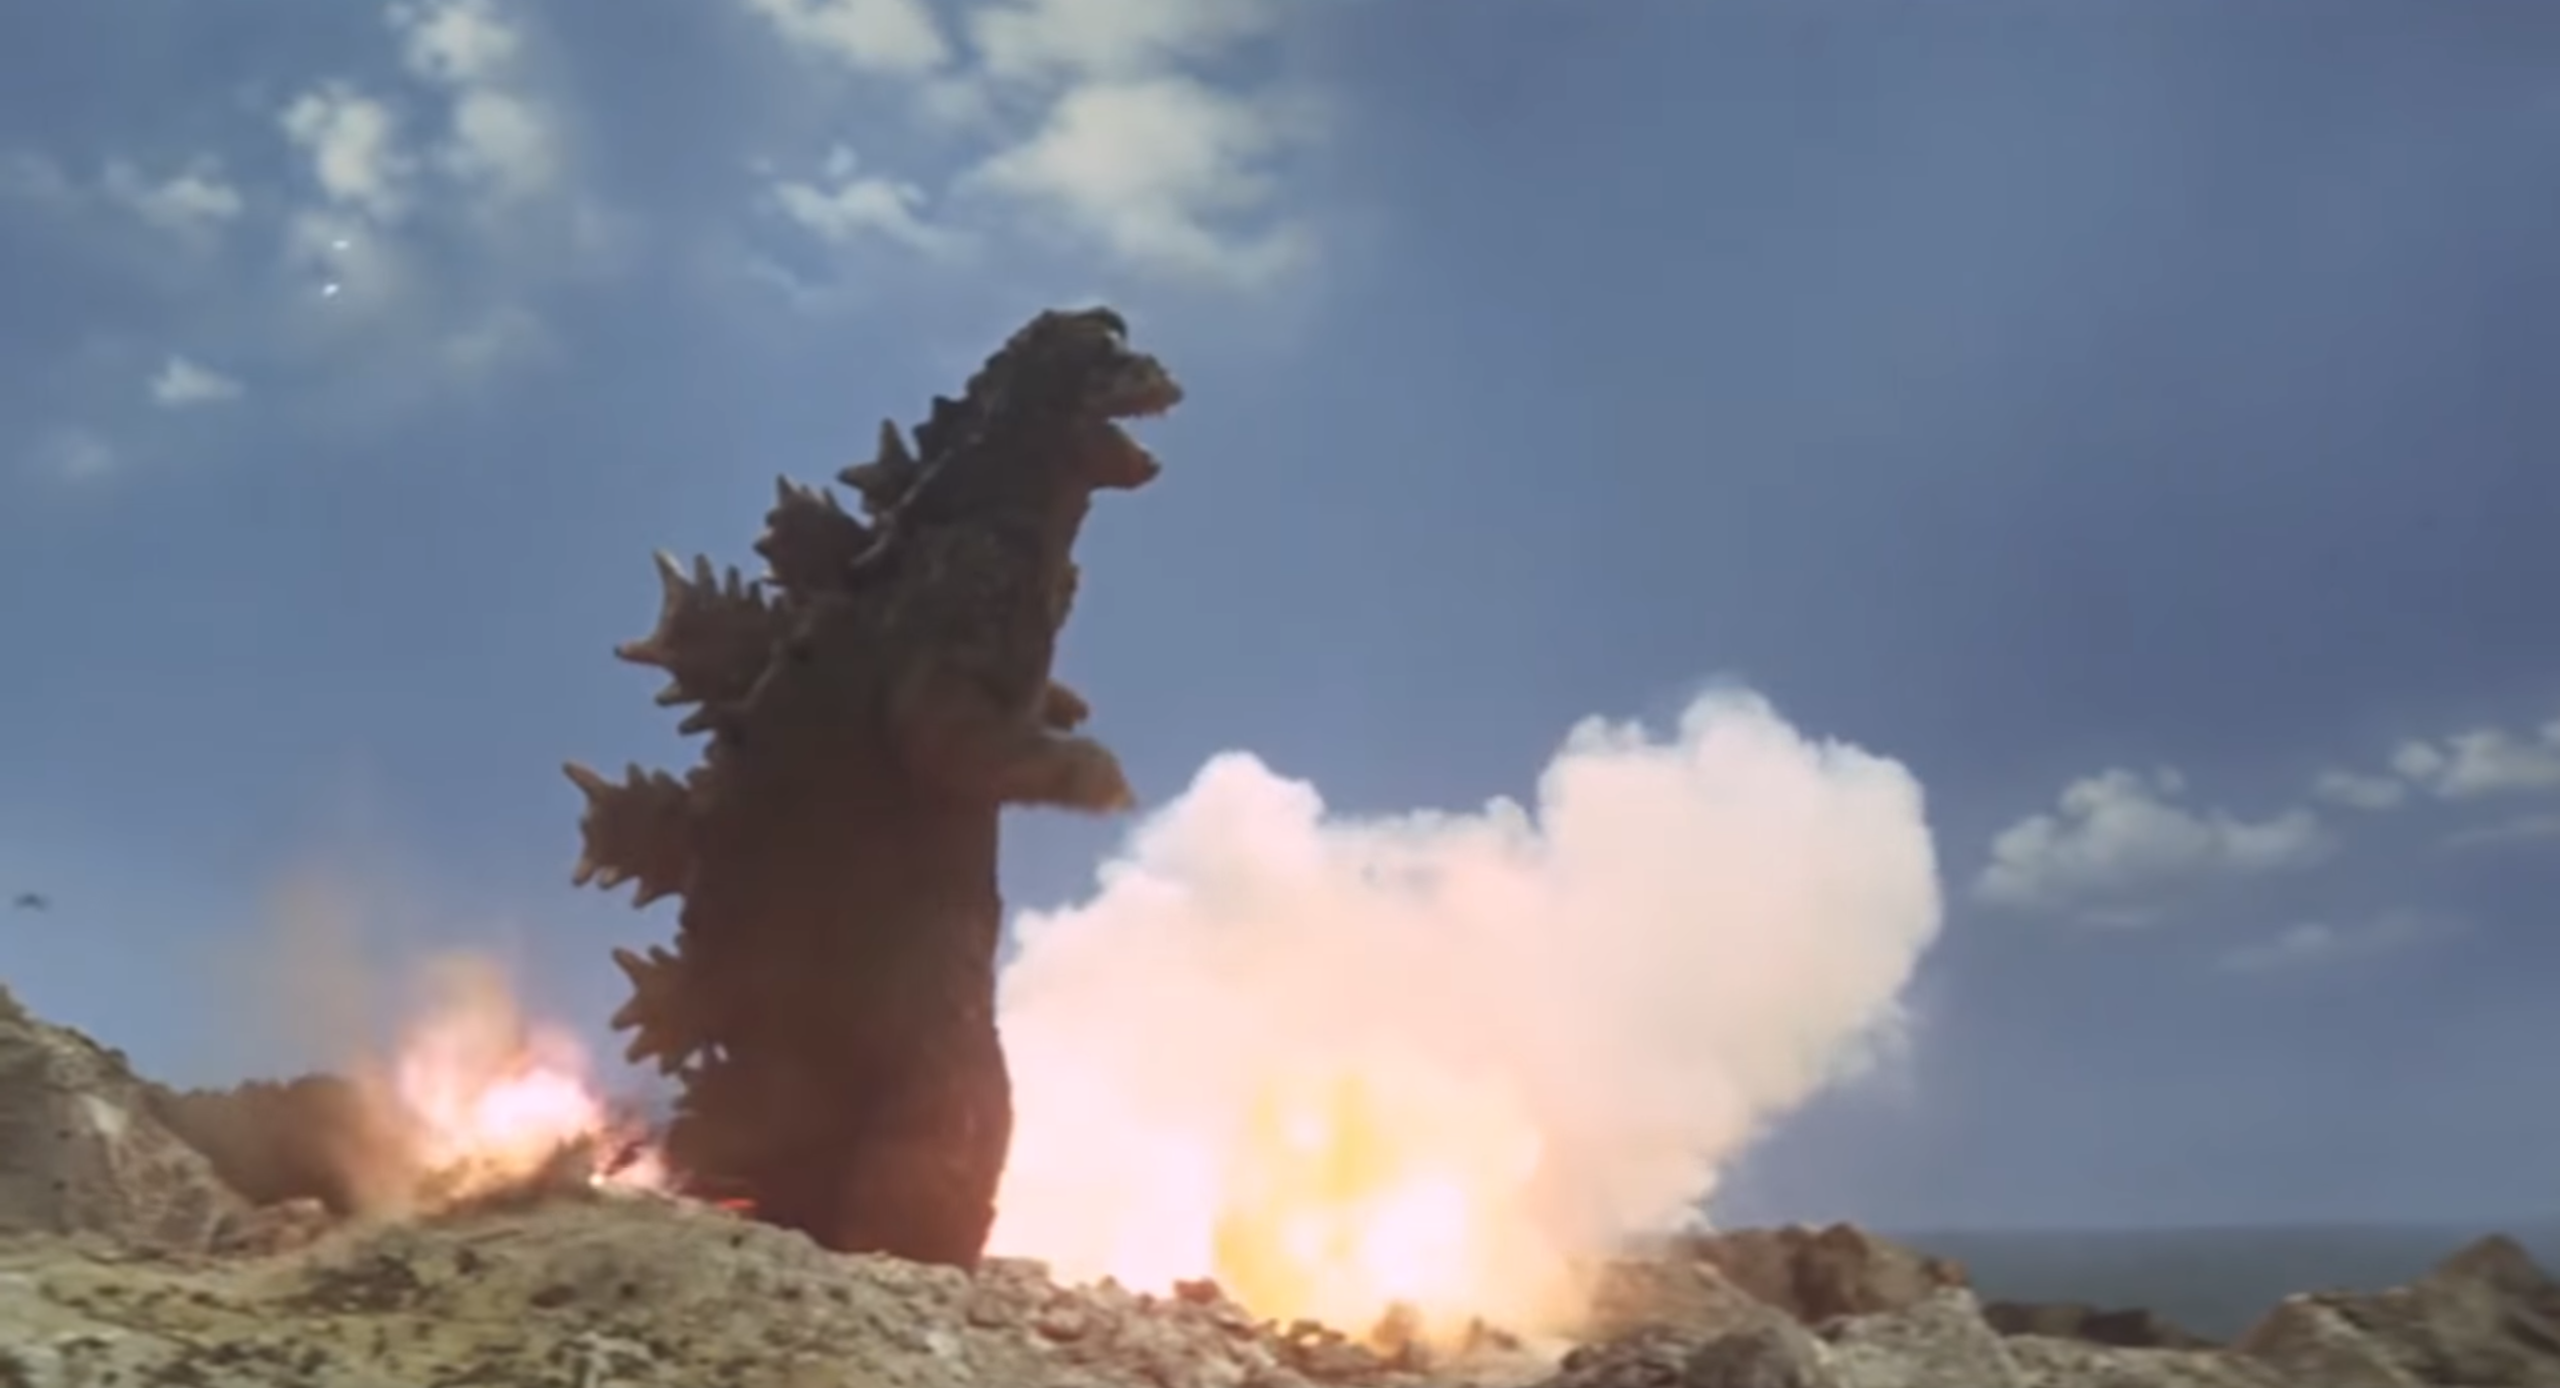 Old School Kaiju Icons Collide In This Retro Re-Imagining Of The Godzilla: King Of The MonstersTrailer